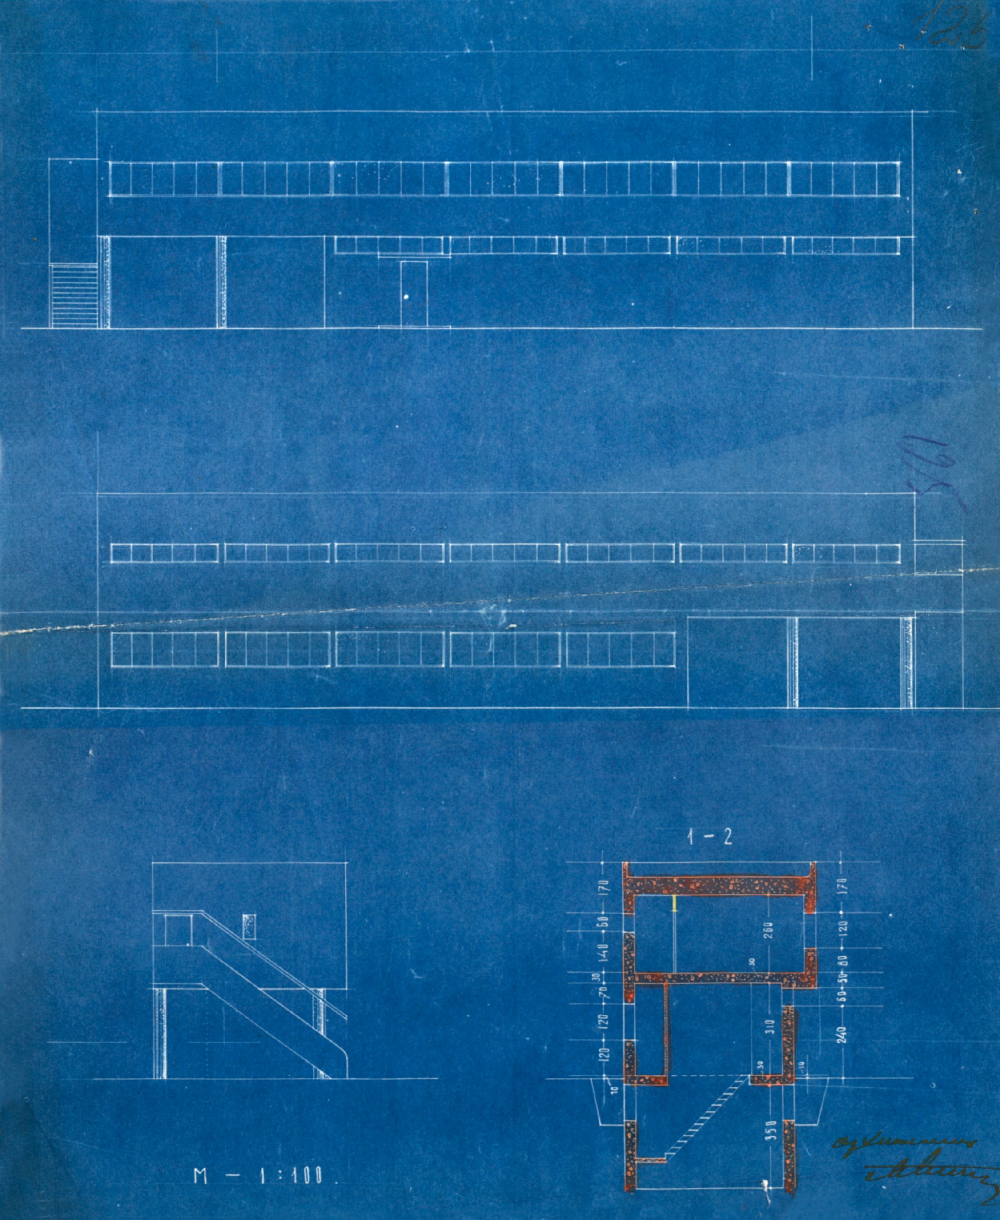 """""""The maintenance block of the Narkomfin Building""""<br>Copyright: The Central Archive of Scientific and Technical Documentation of Moscow / Provided by Ginzburh Architects"""